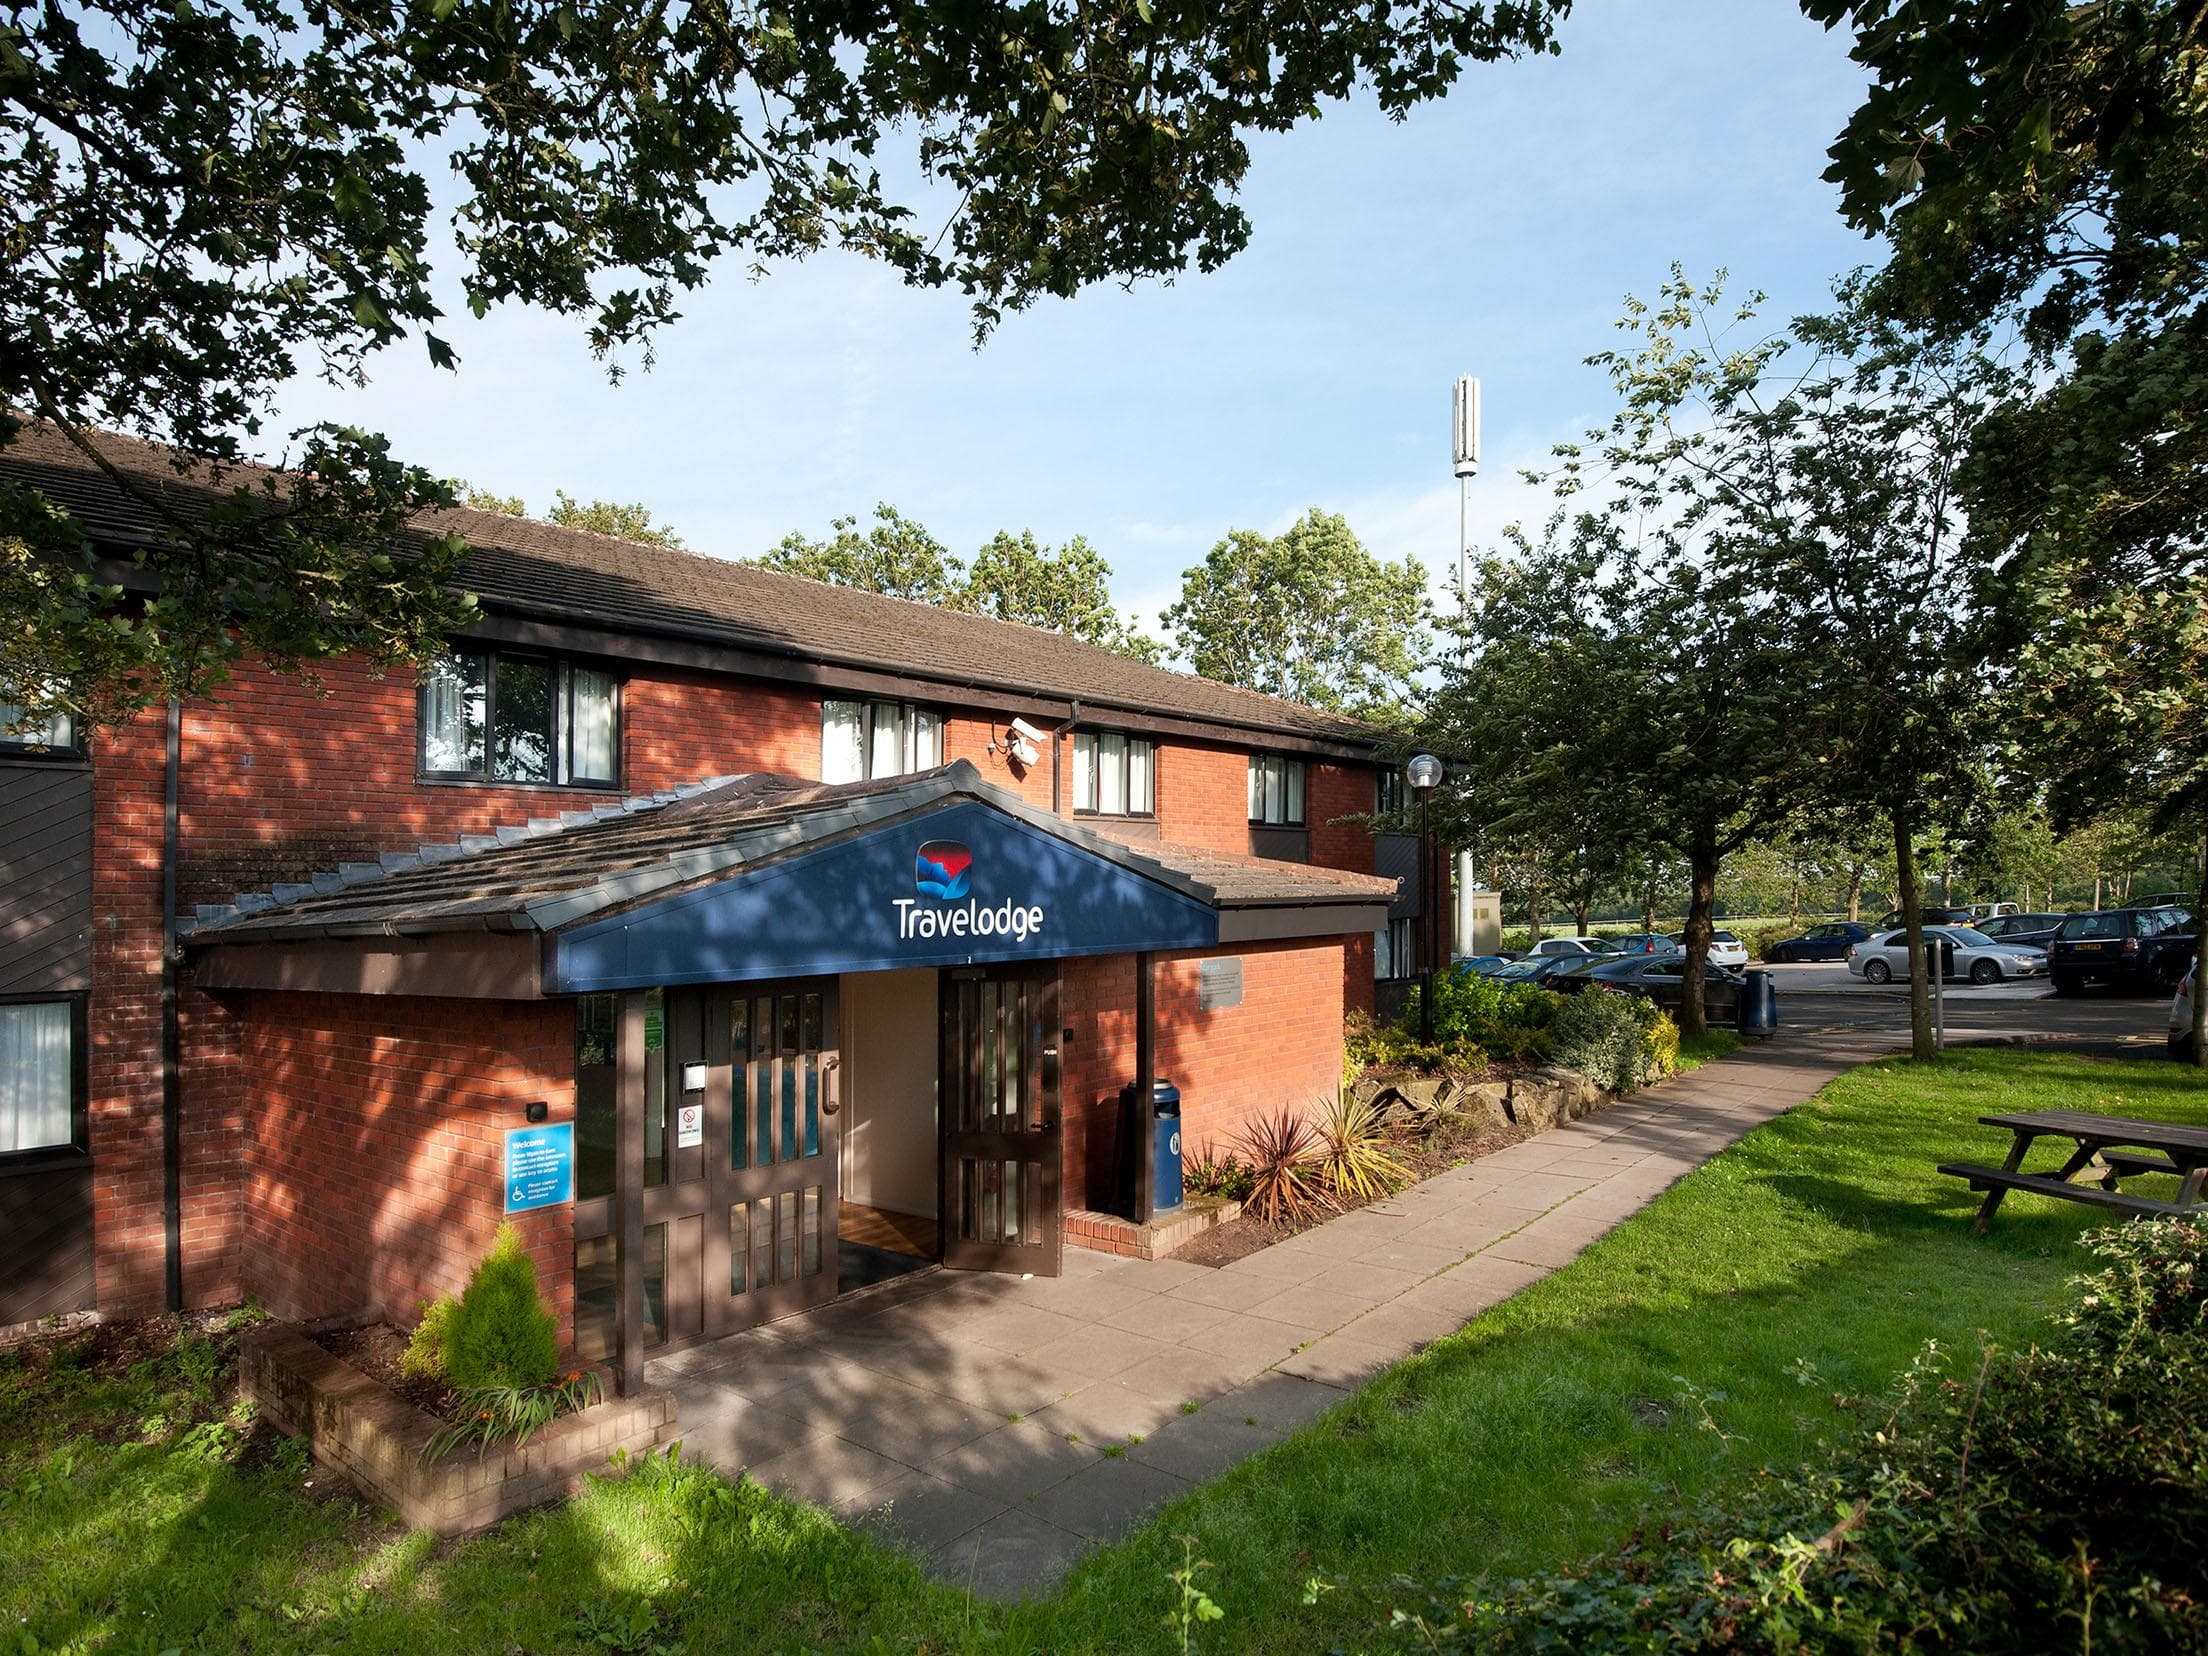 Travelodge Macclesfield Adlington Hotel Macclesfield